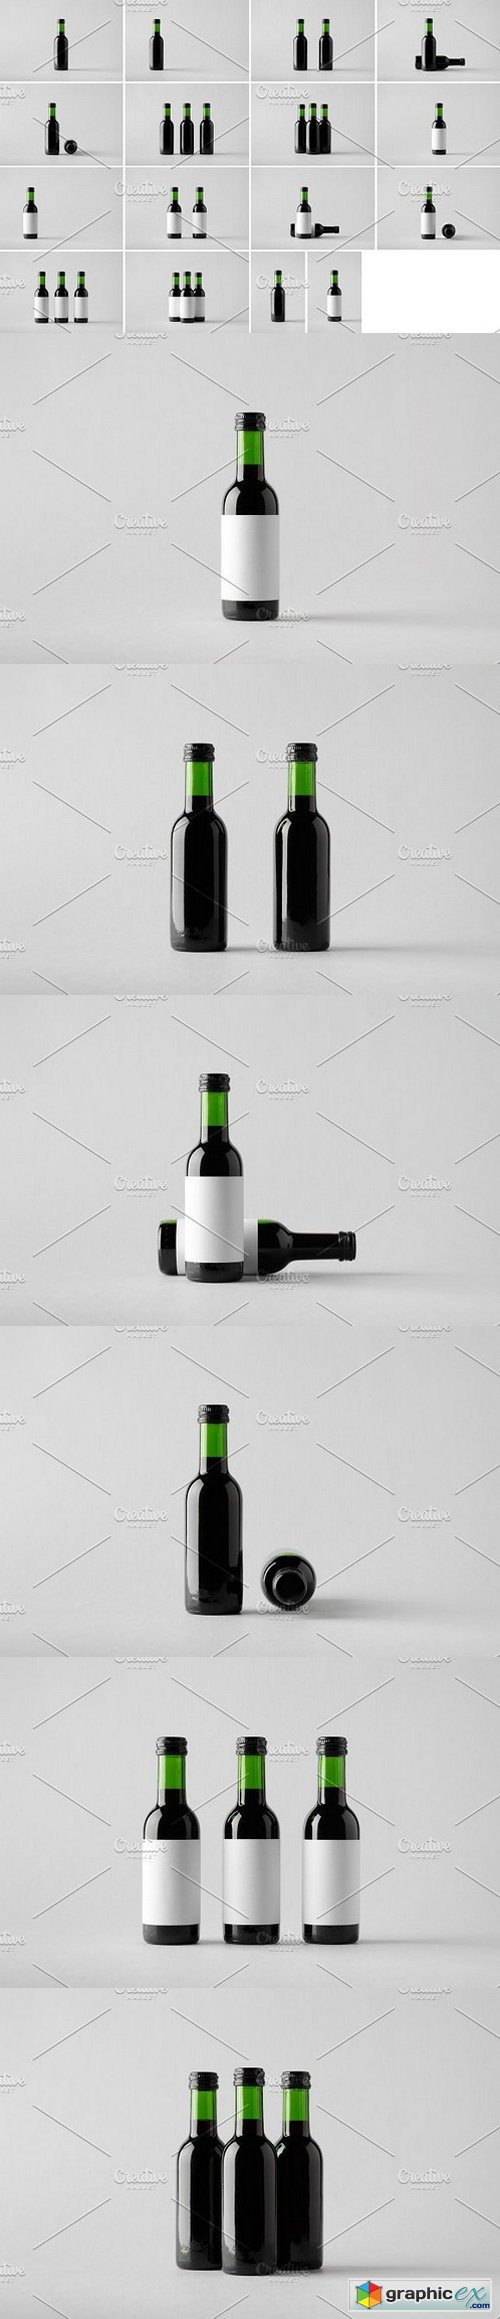 Wine Bottle Mock-Up Photo Bundle